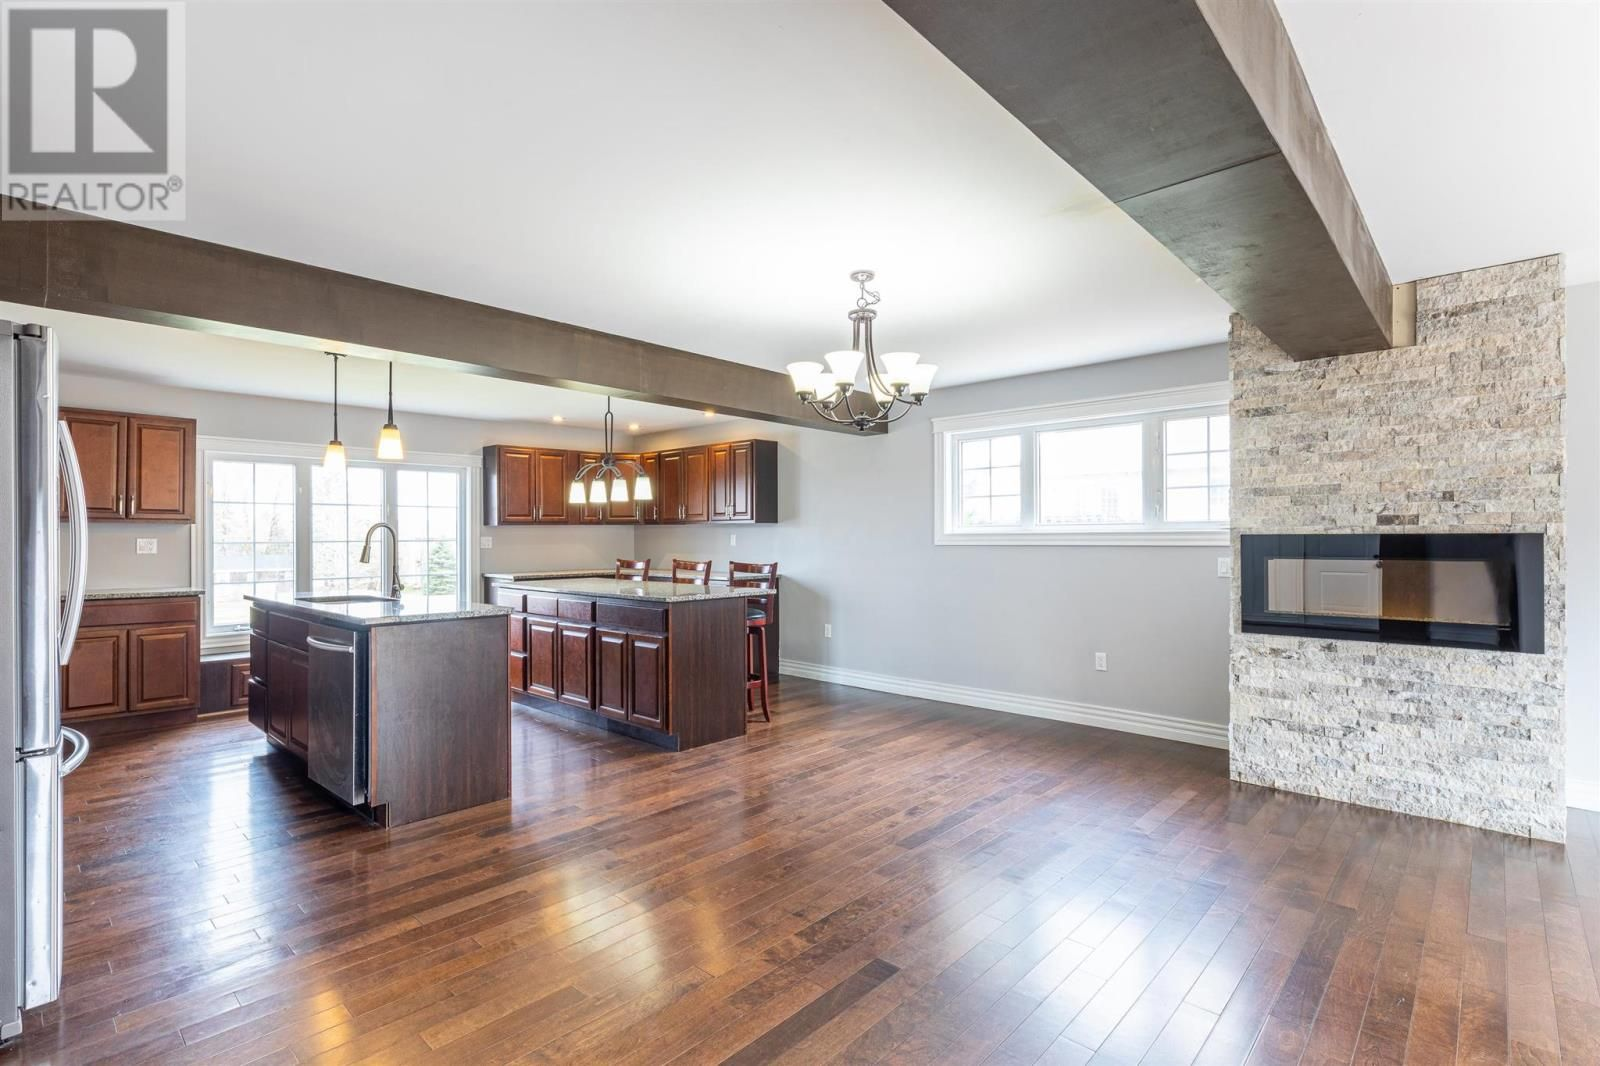 Photo 6: Photos: 5 Cherry Lane in Stratford: House for sale : MLS®# 202119303